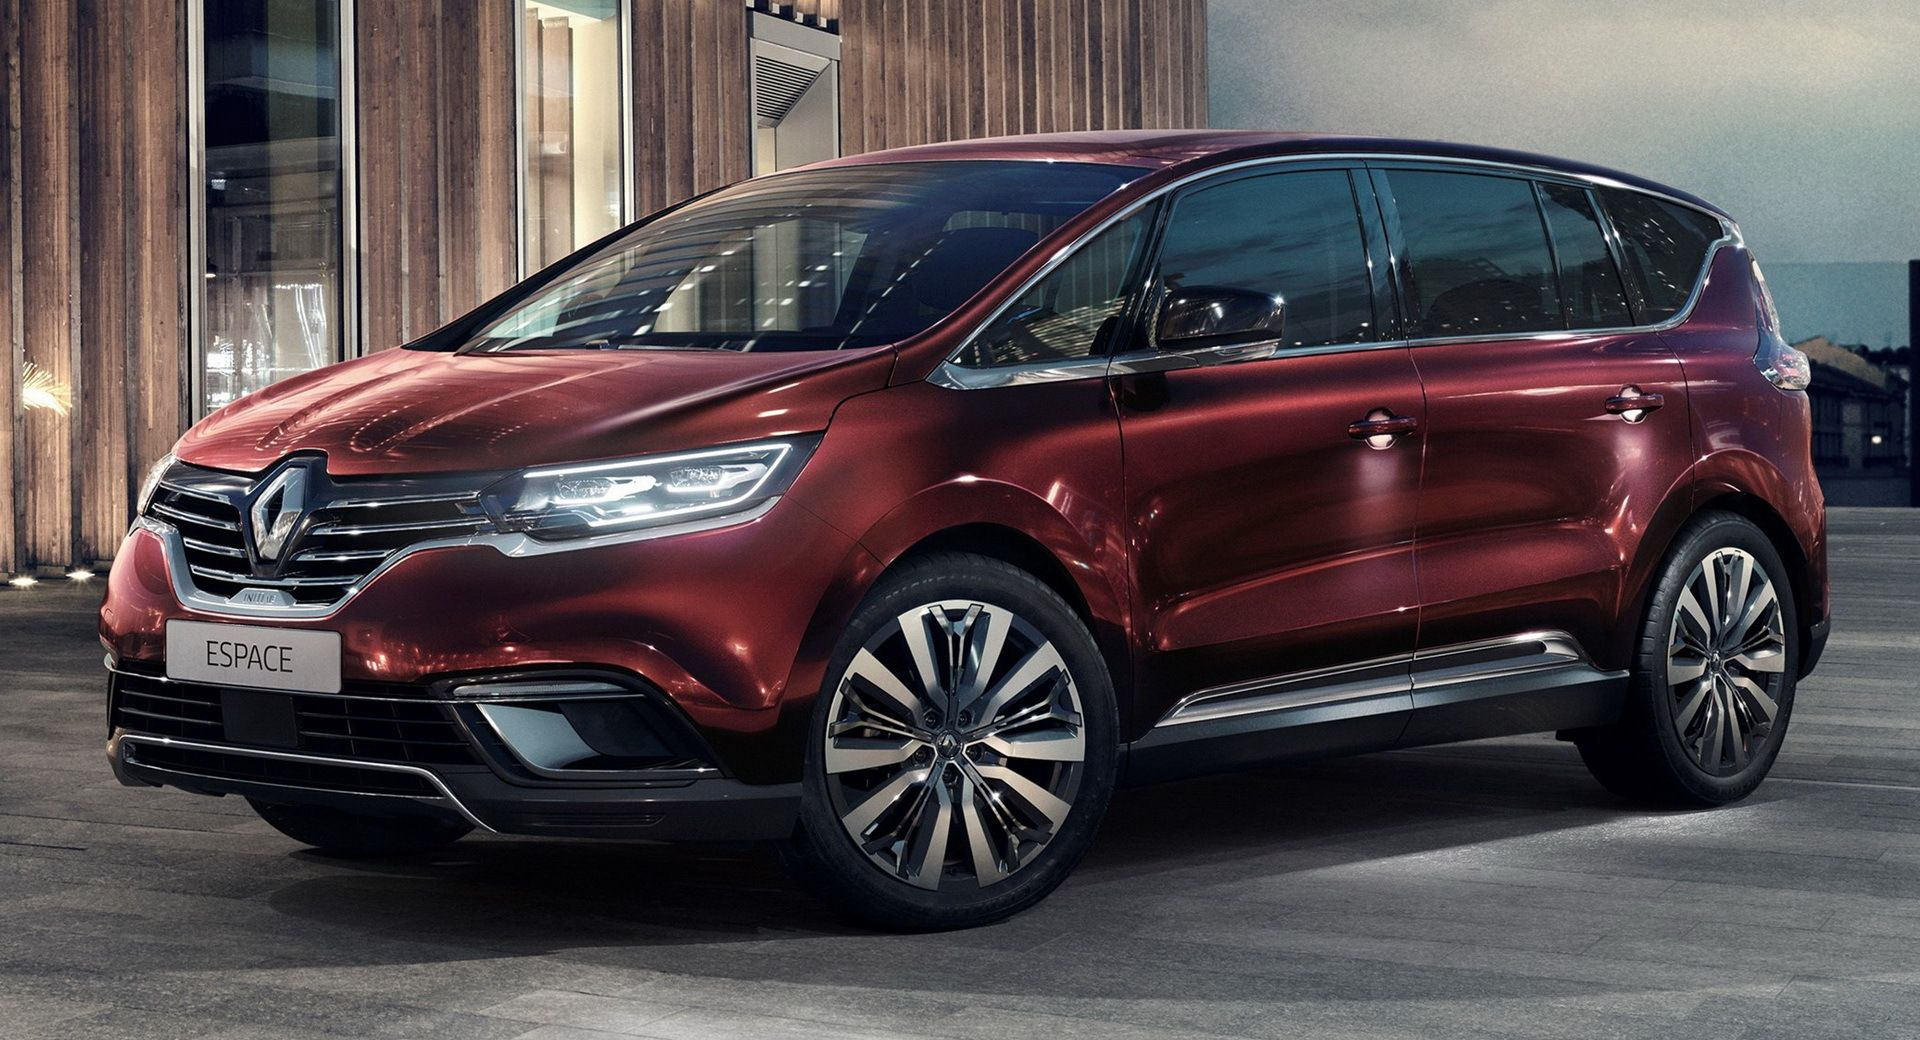 Groupe Renault Espace